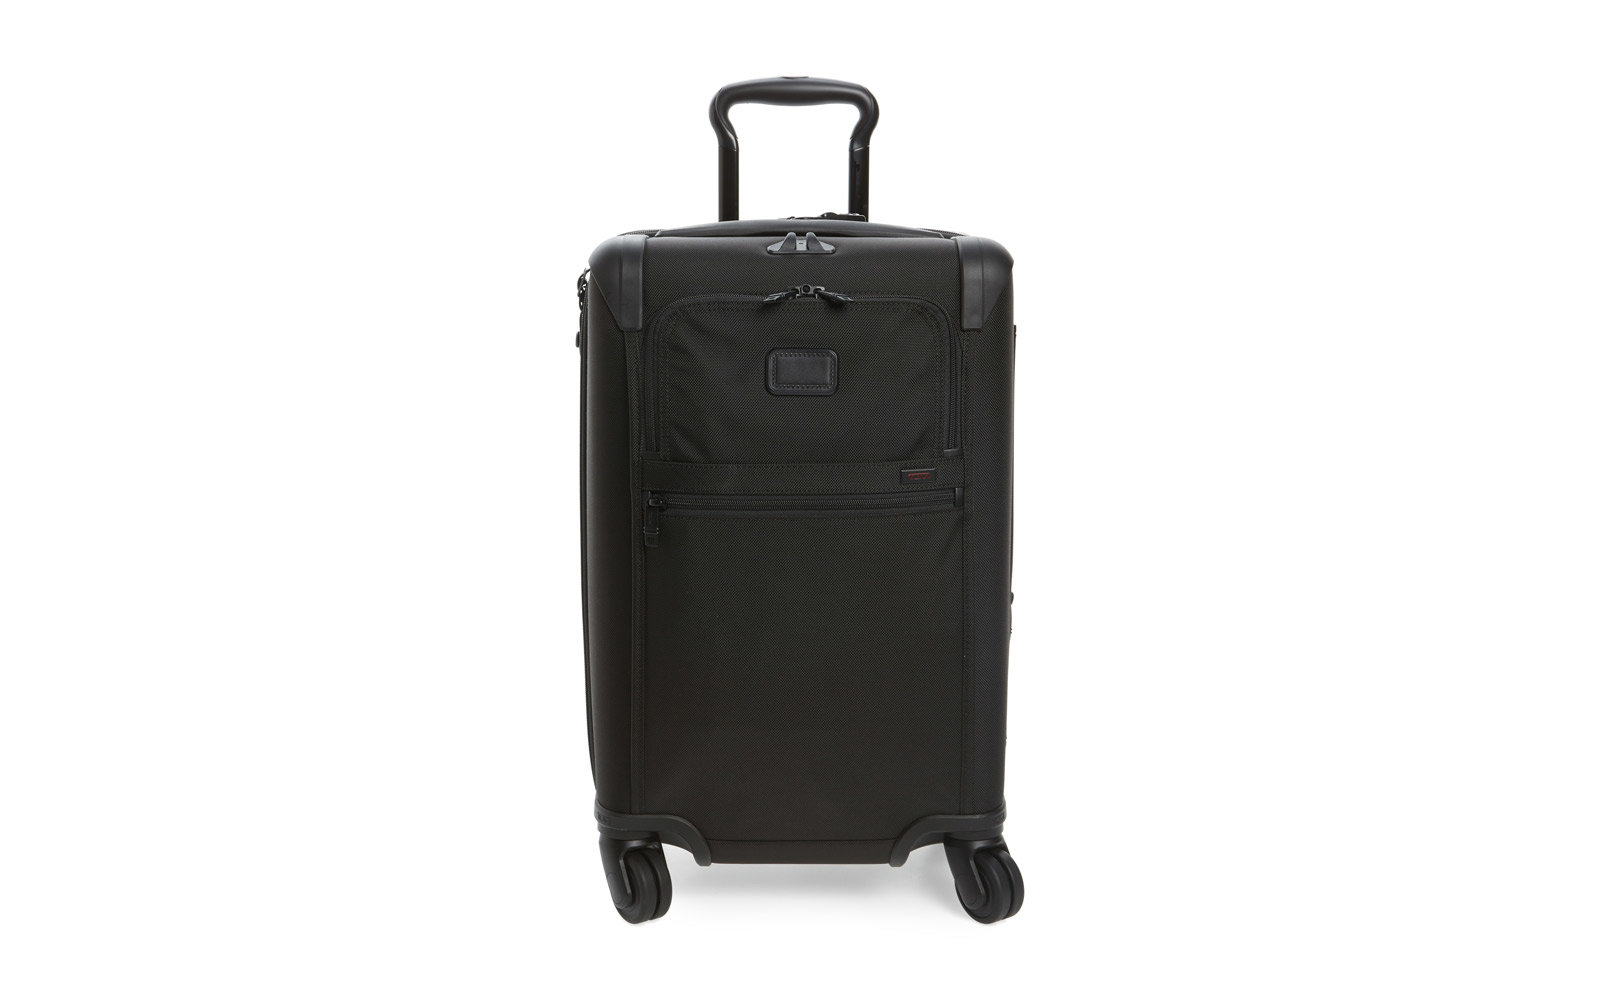 Tumi Alpha 2 International 22-Inch Carry-On